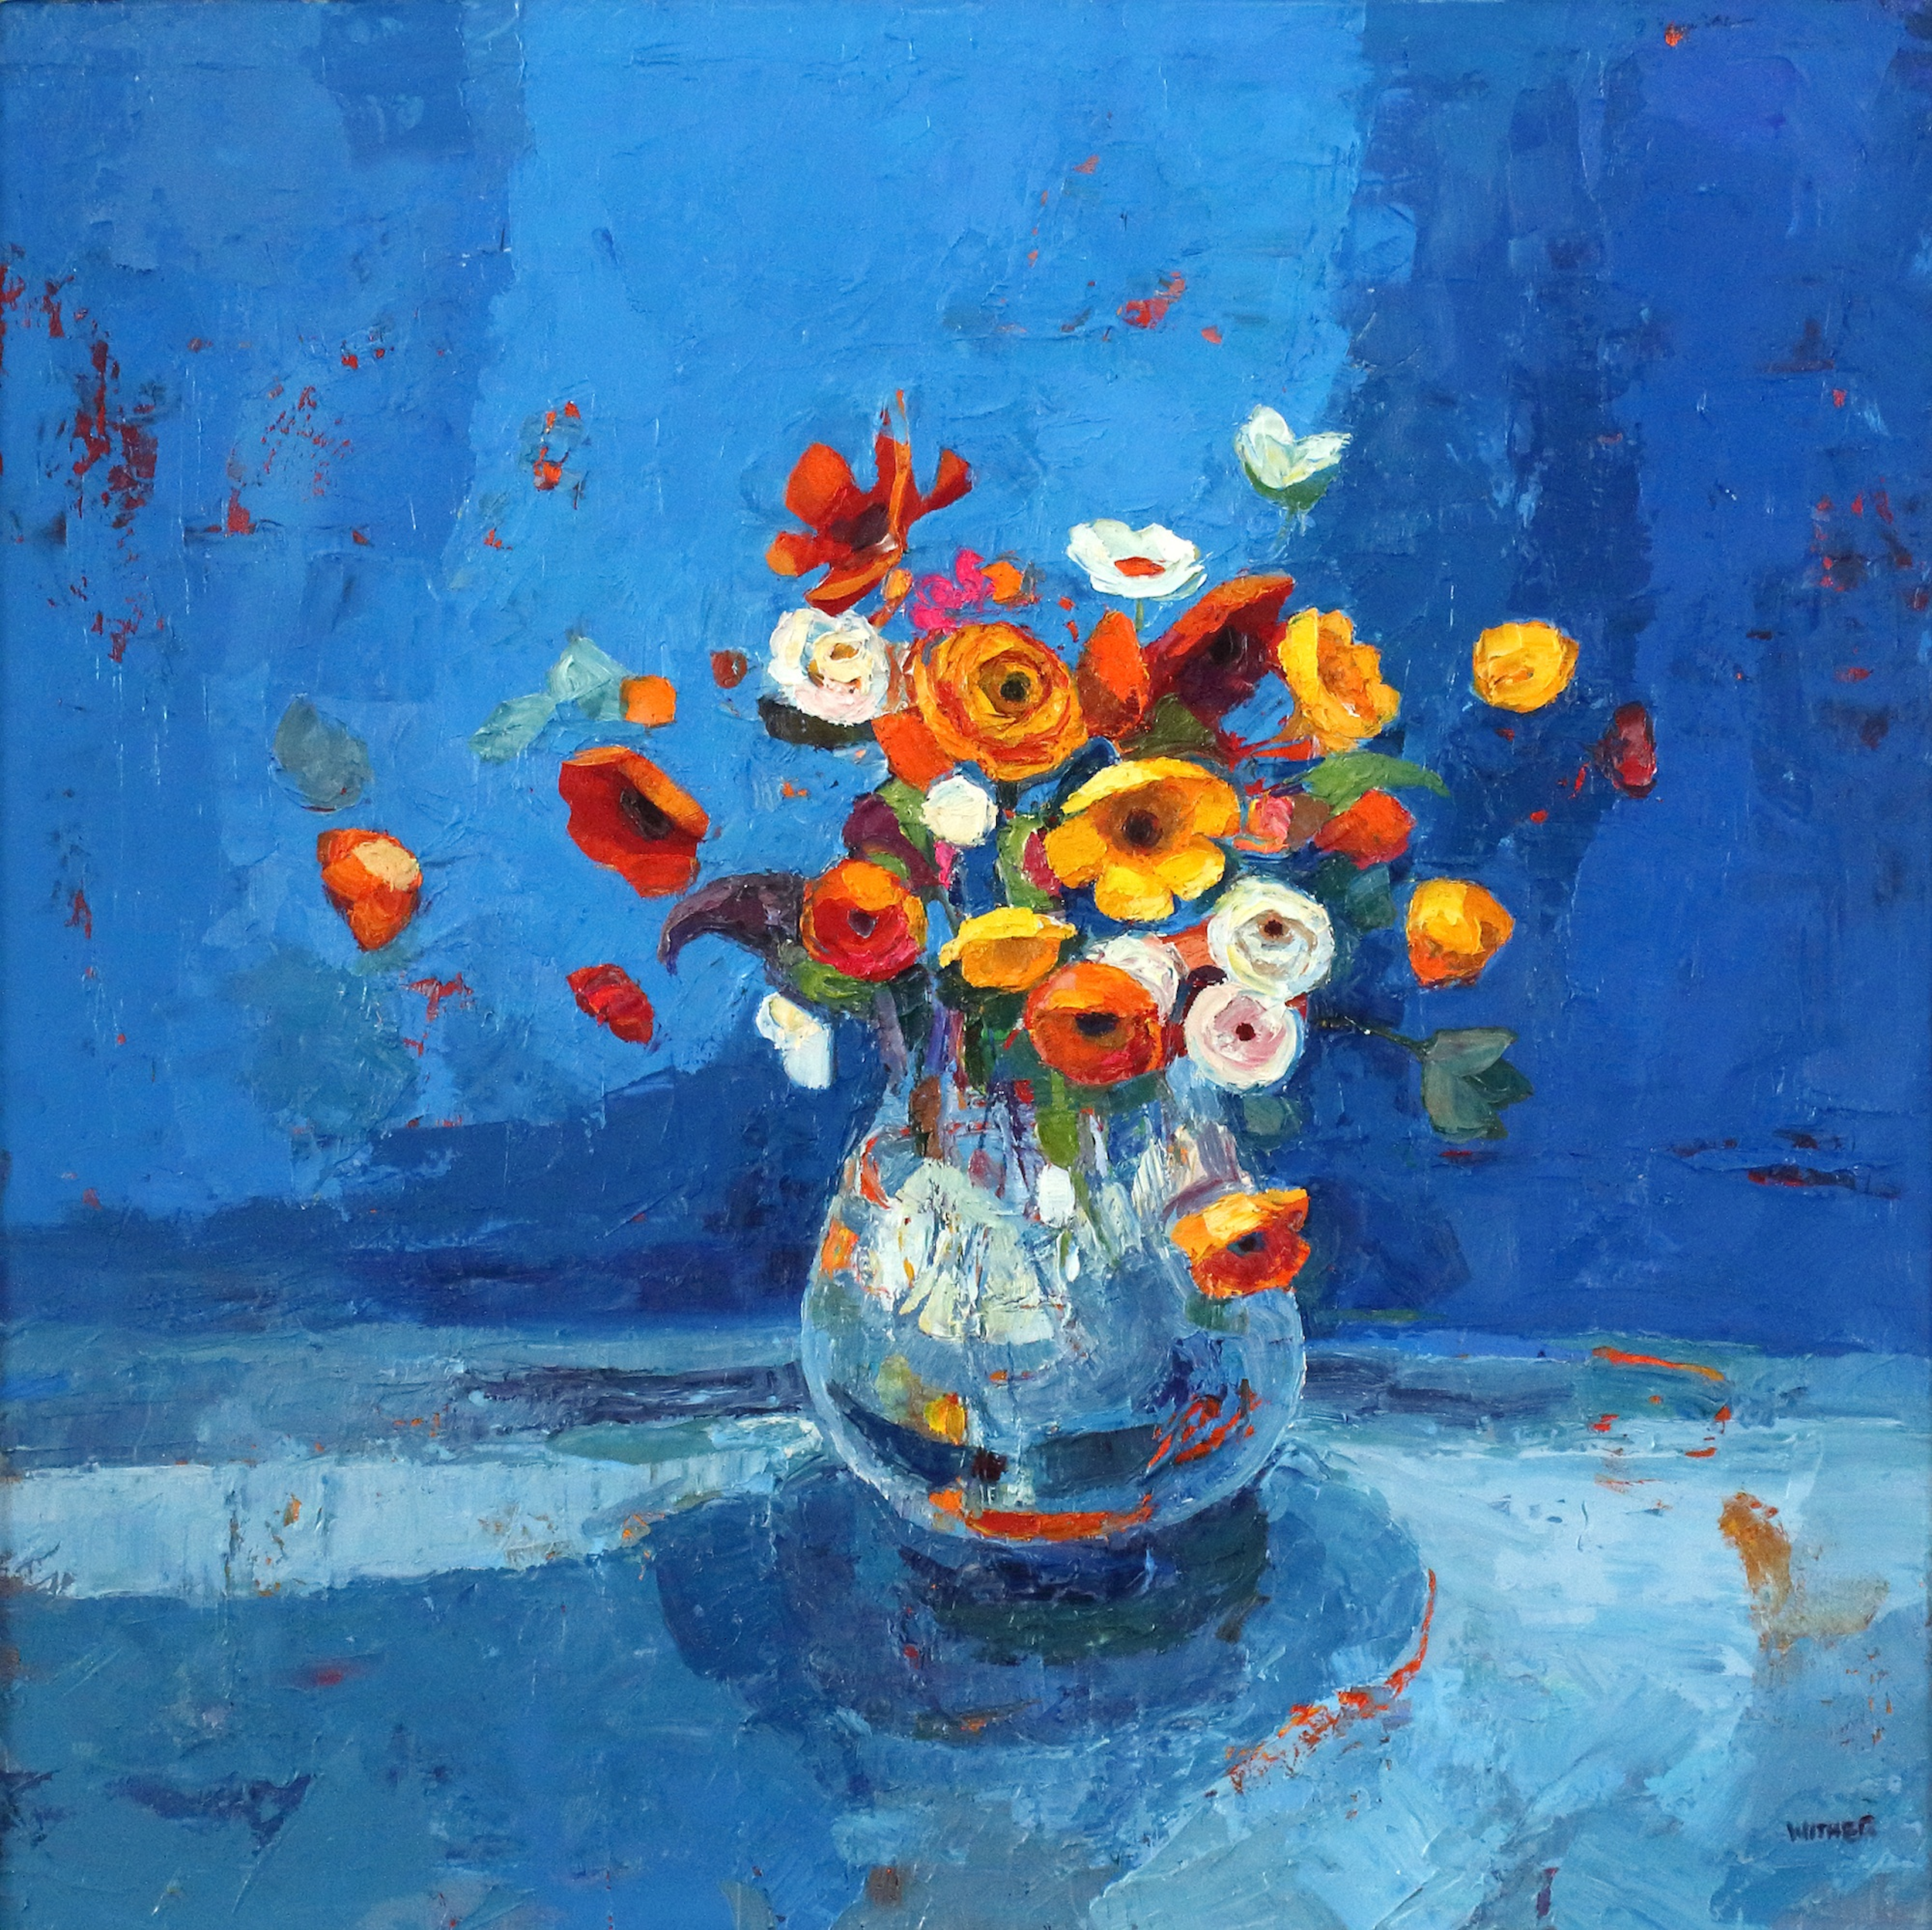 Title: In the Deep Blue Size: 24 x 24 inches Medium: Oil on Canvas Price: £3750